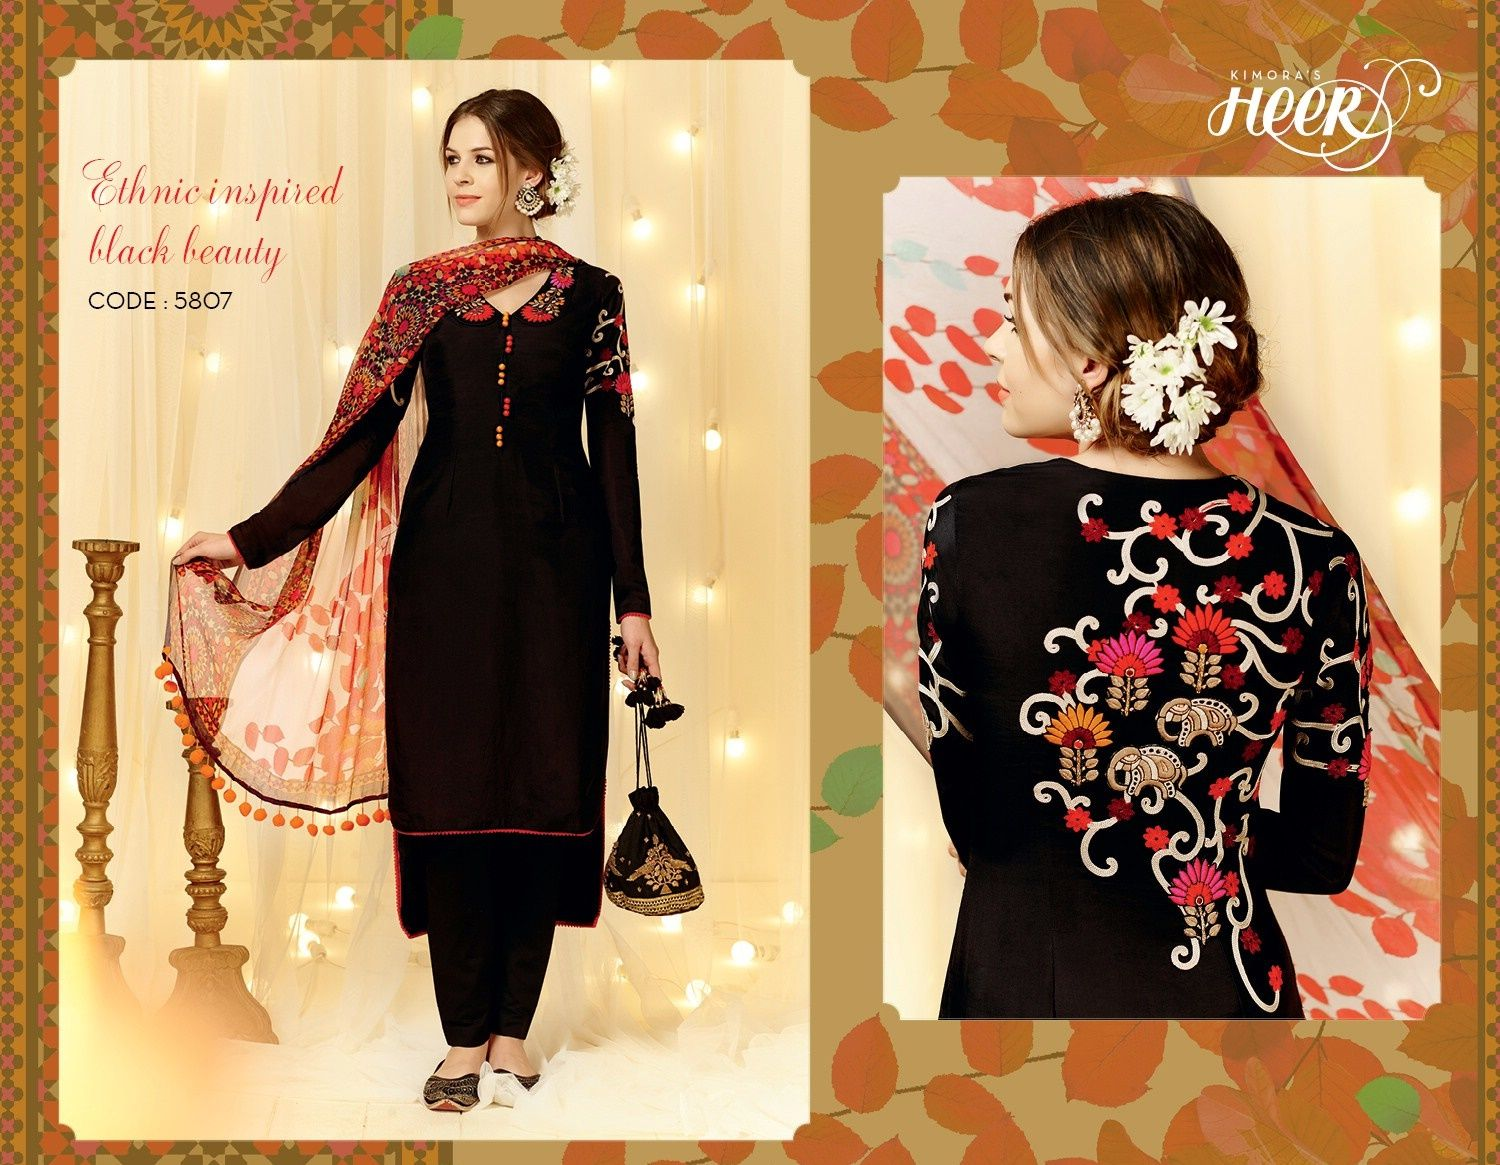 """""""Ethnic Inspired Black Beuty"""" Awesome post by Glamzon #fashion"""